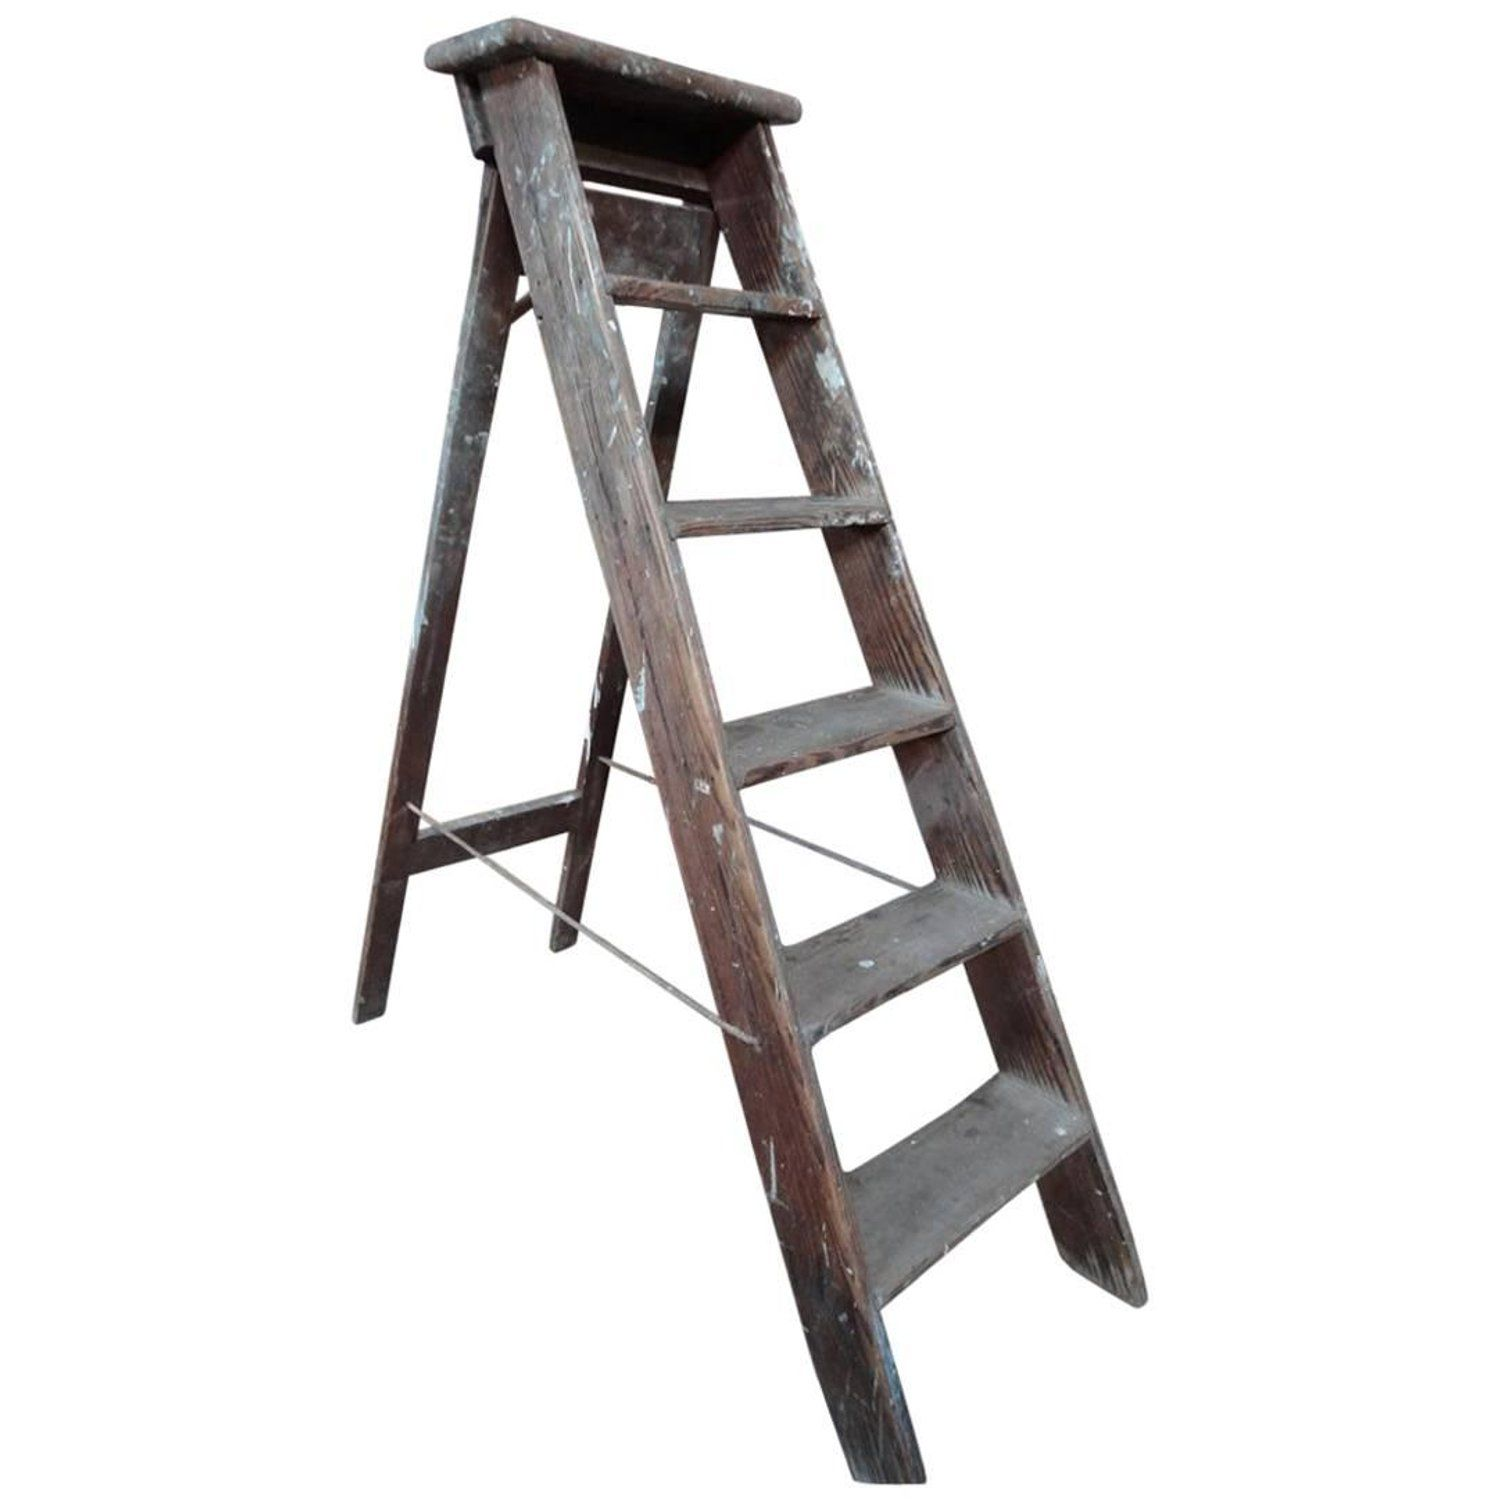 1900s French Vintage Fruit Picking Painting Ladder Library Ladder Shop Display Painting Ladders Library Ladder French Vintage